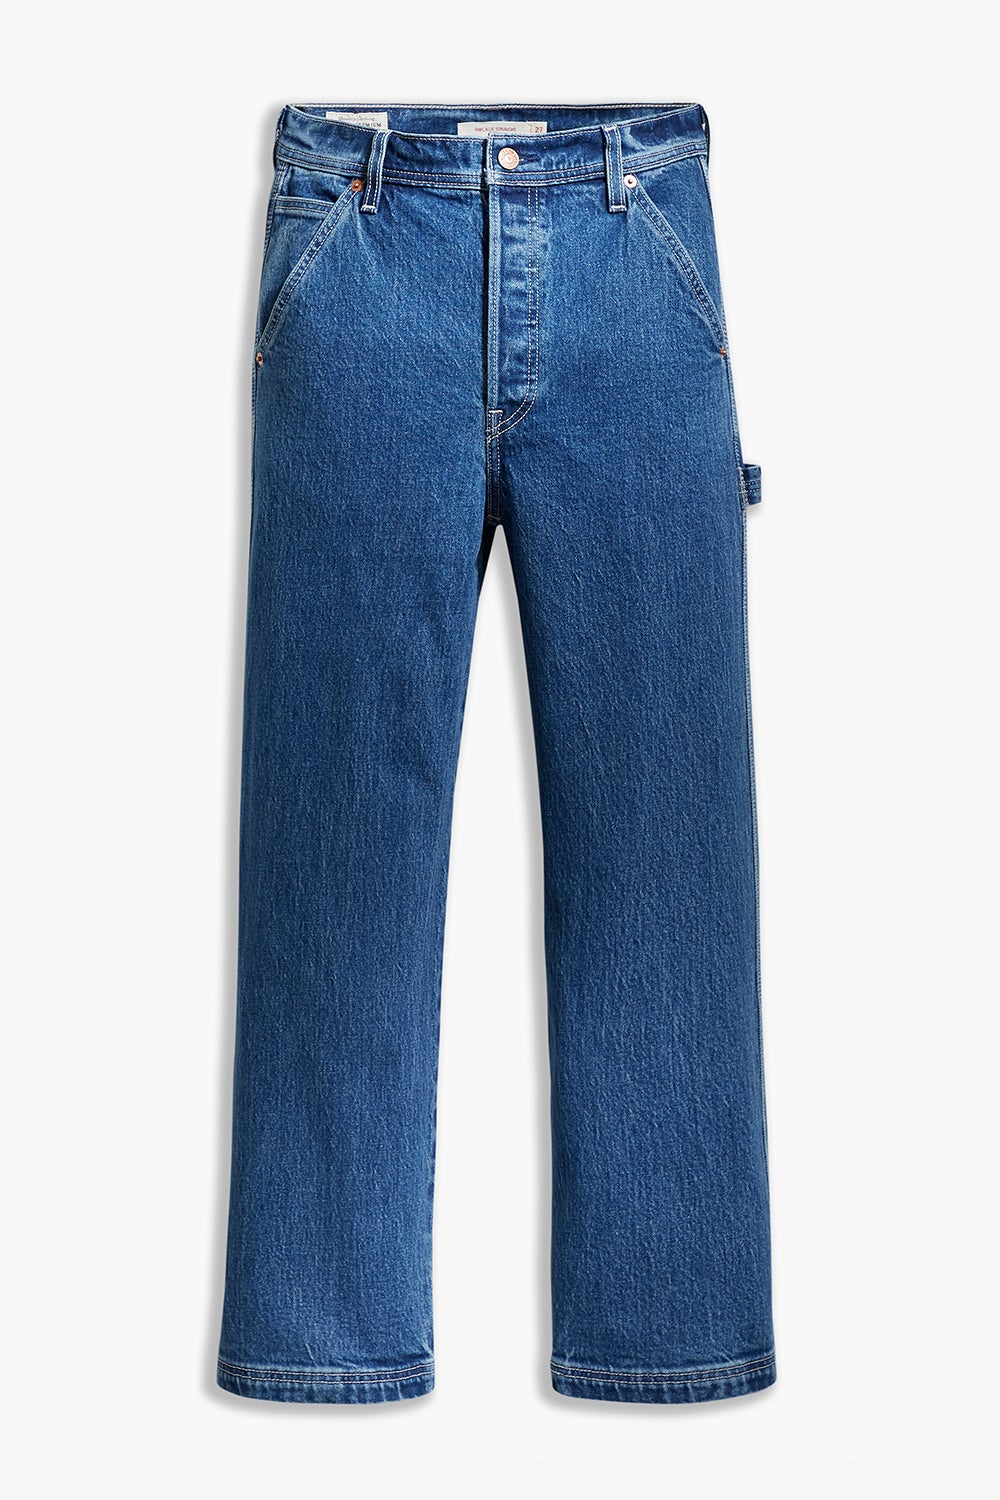 Levi's Ribcage Straight Ankle Jeans Utility Nine To Five